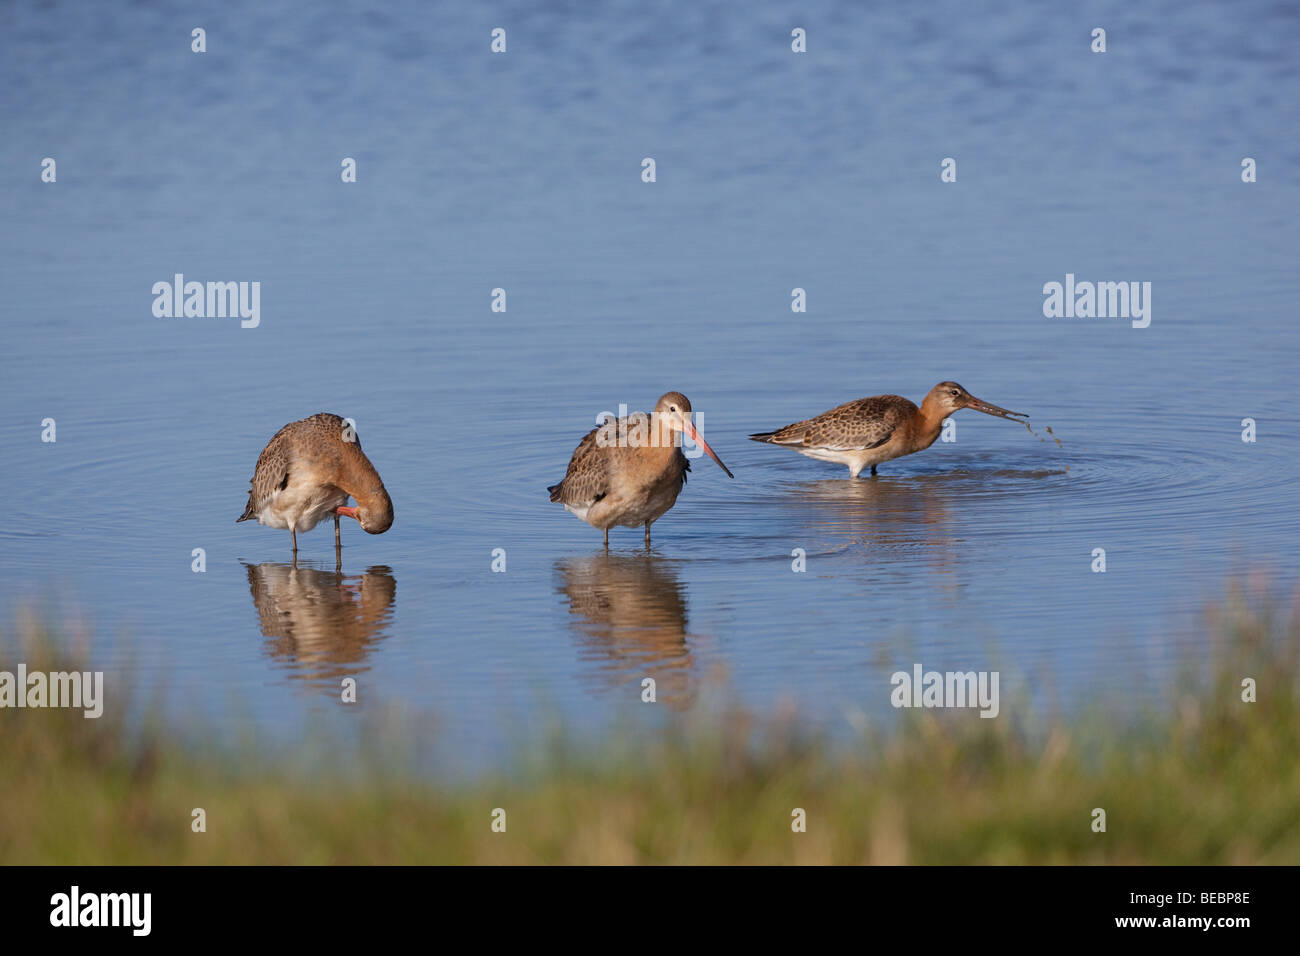 Black-tailed Godwits Limosa limosa feeding in creek in late summer - Stock Image